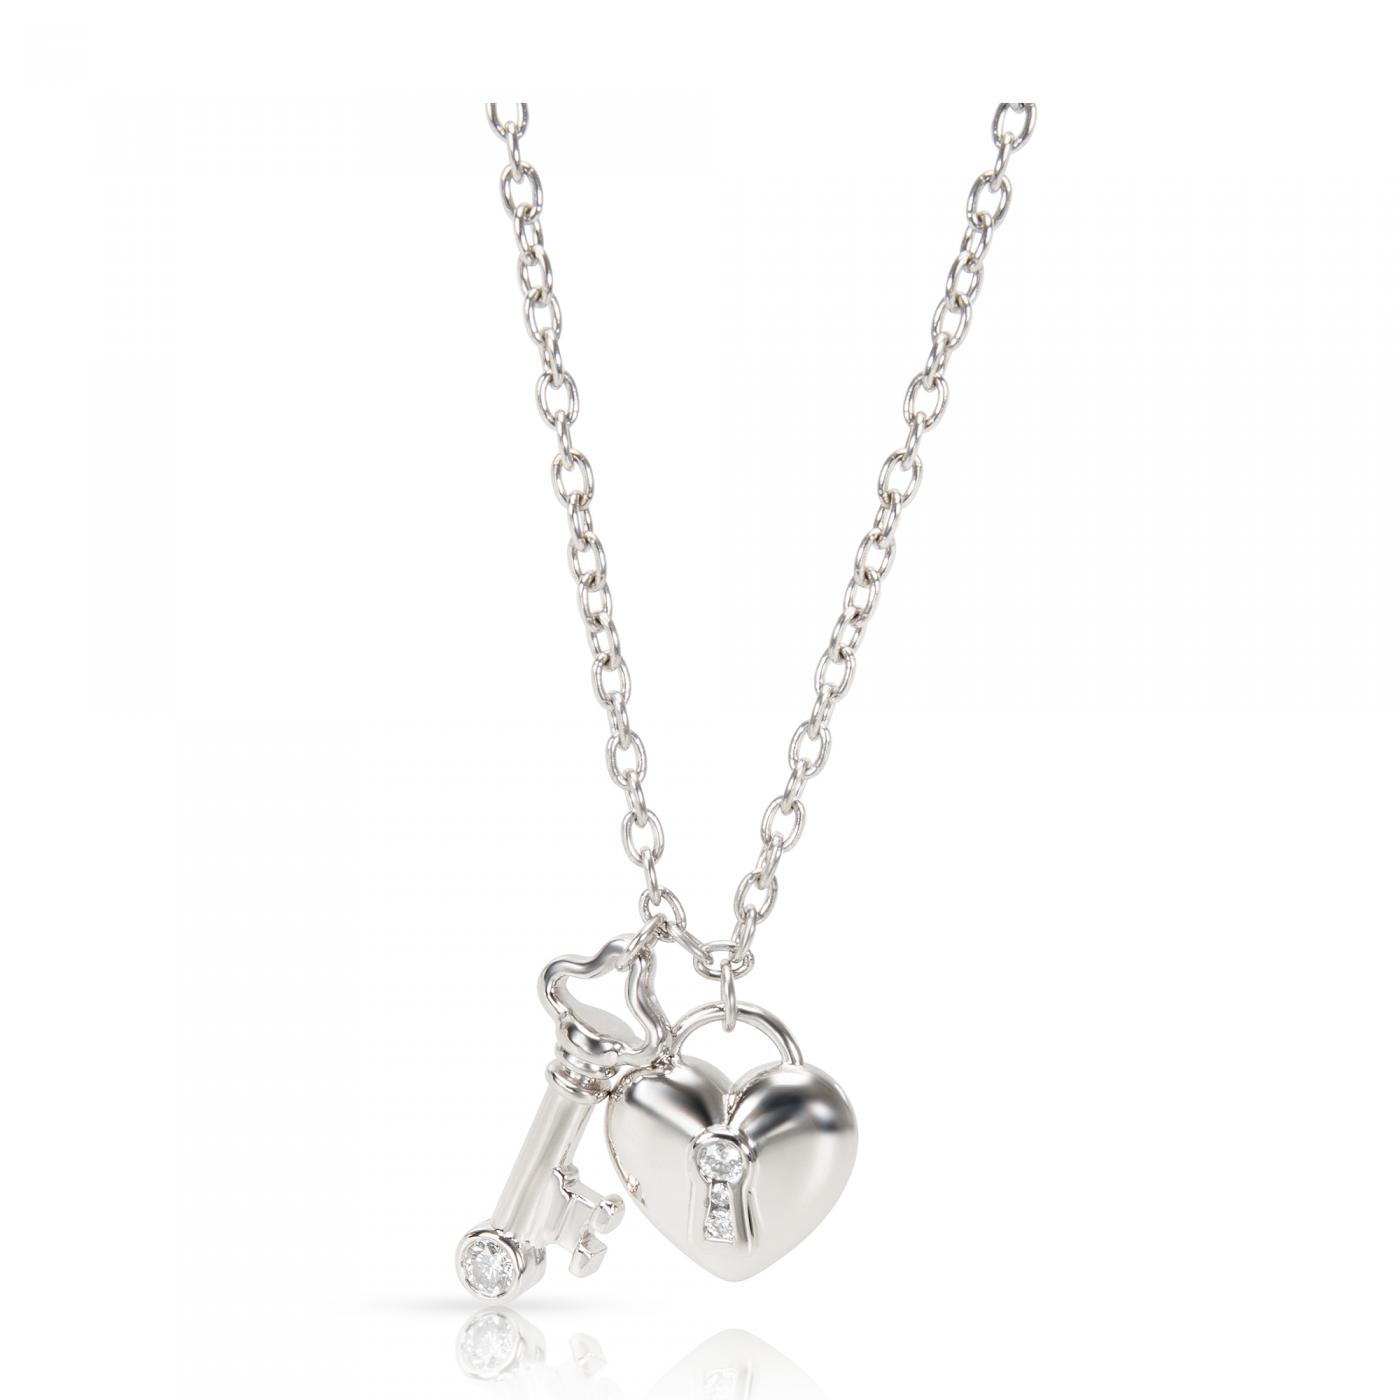 Tiffany And Co Tiffany Co Heart Lock Key Charm Diamond Necklace In Platinum